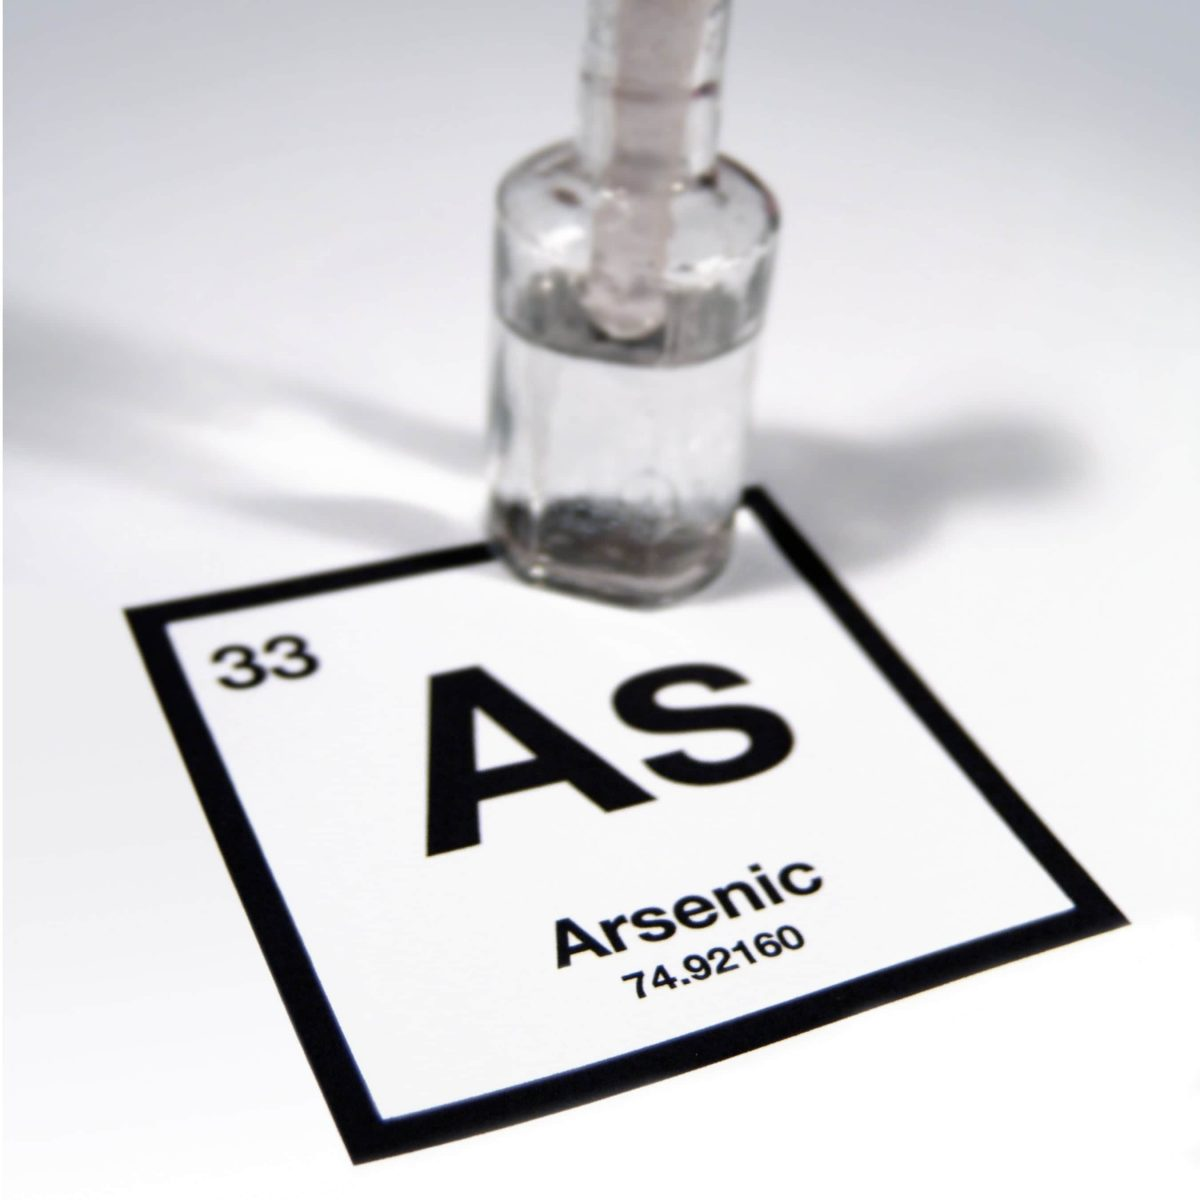 A clear bottle filled with liquid, sitting on a printed element of arsenic from the periodic table.